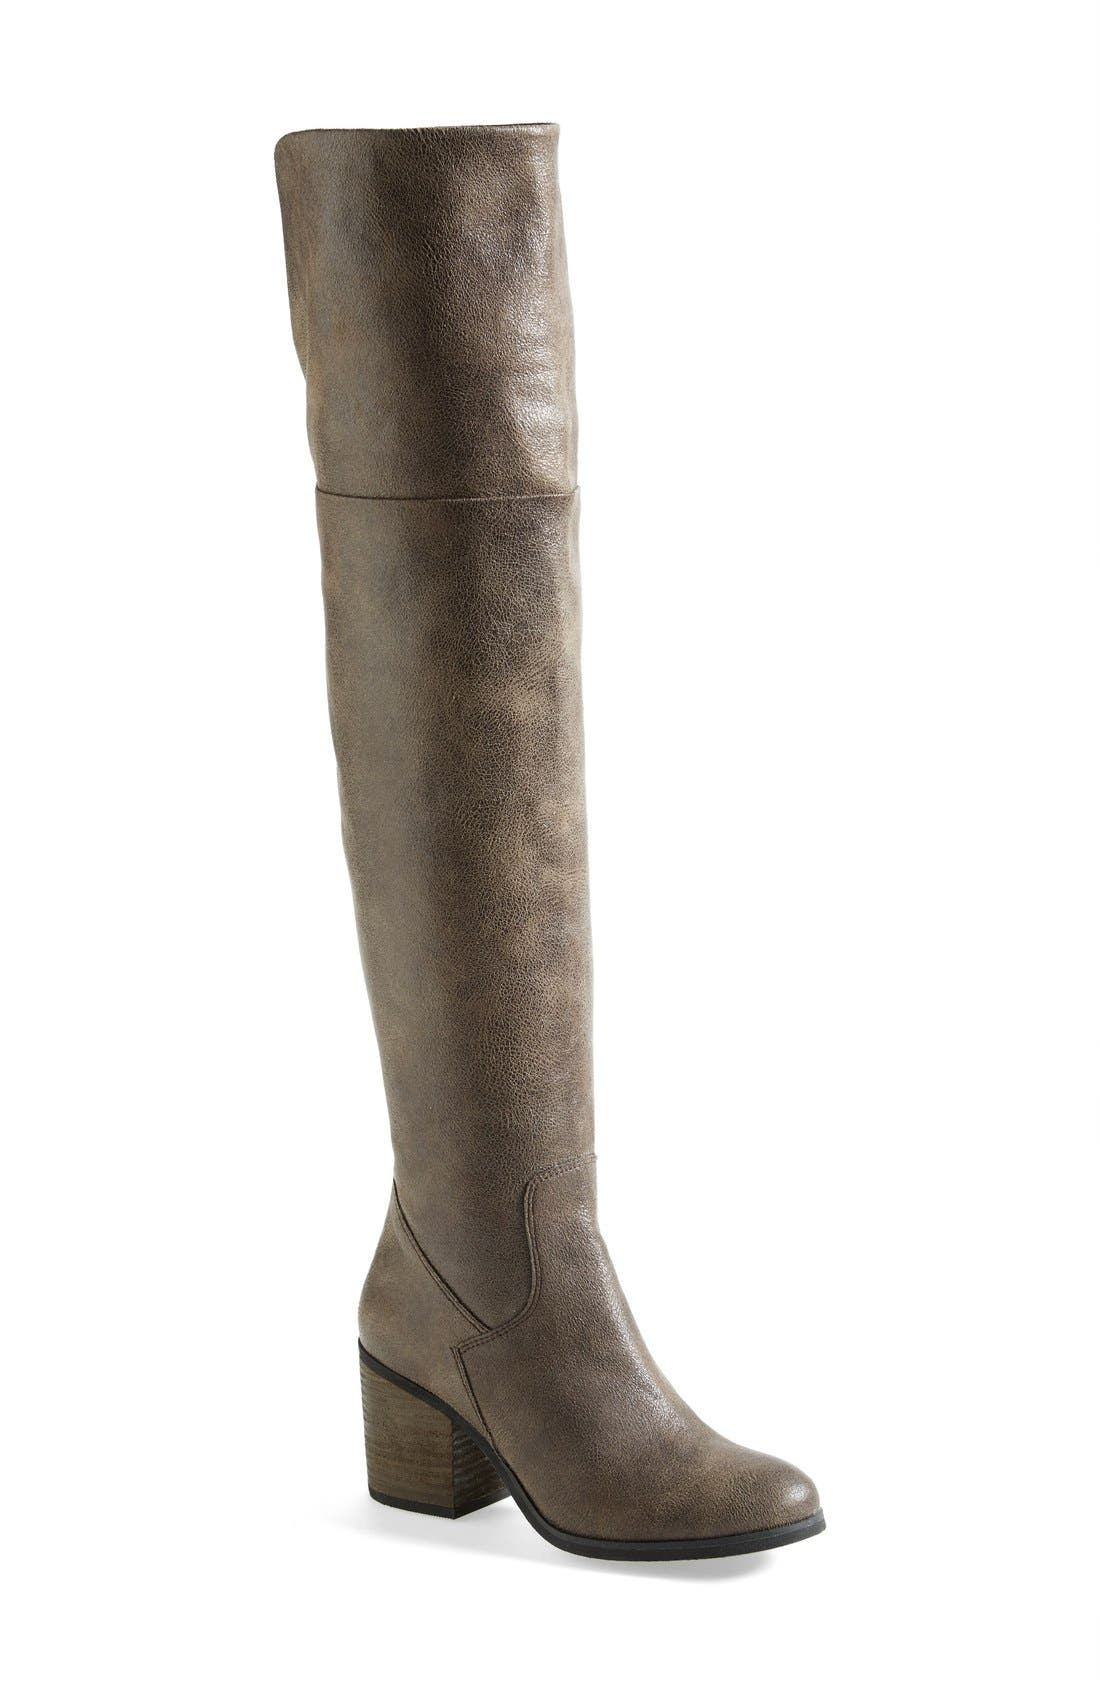 Alternate Image 1 Selected - Hinge Canton Over the Knee Boot (Women)